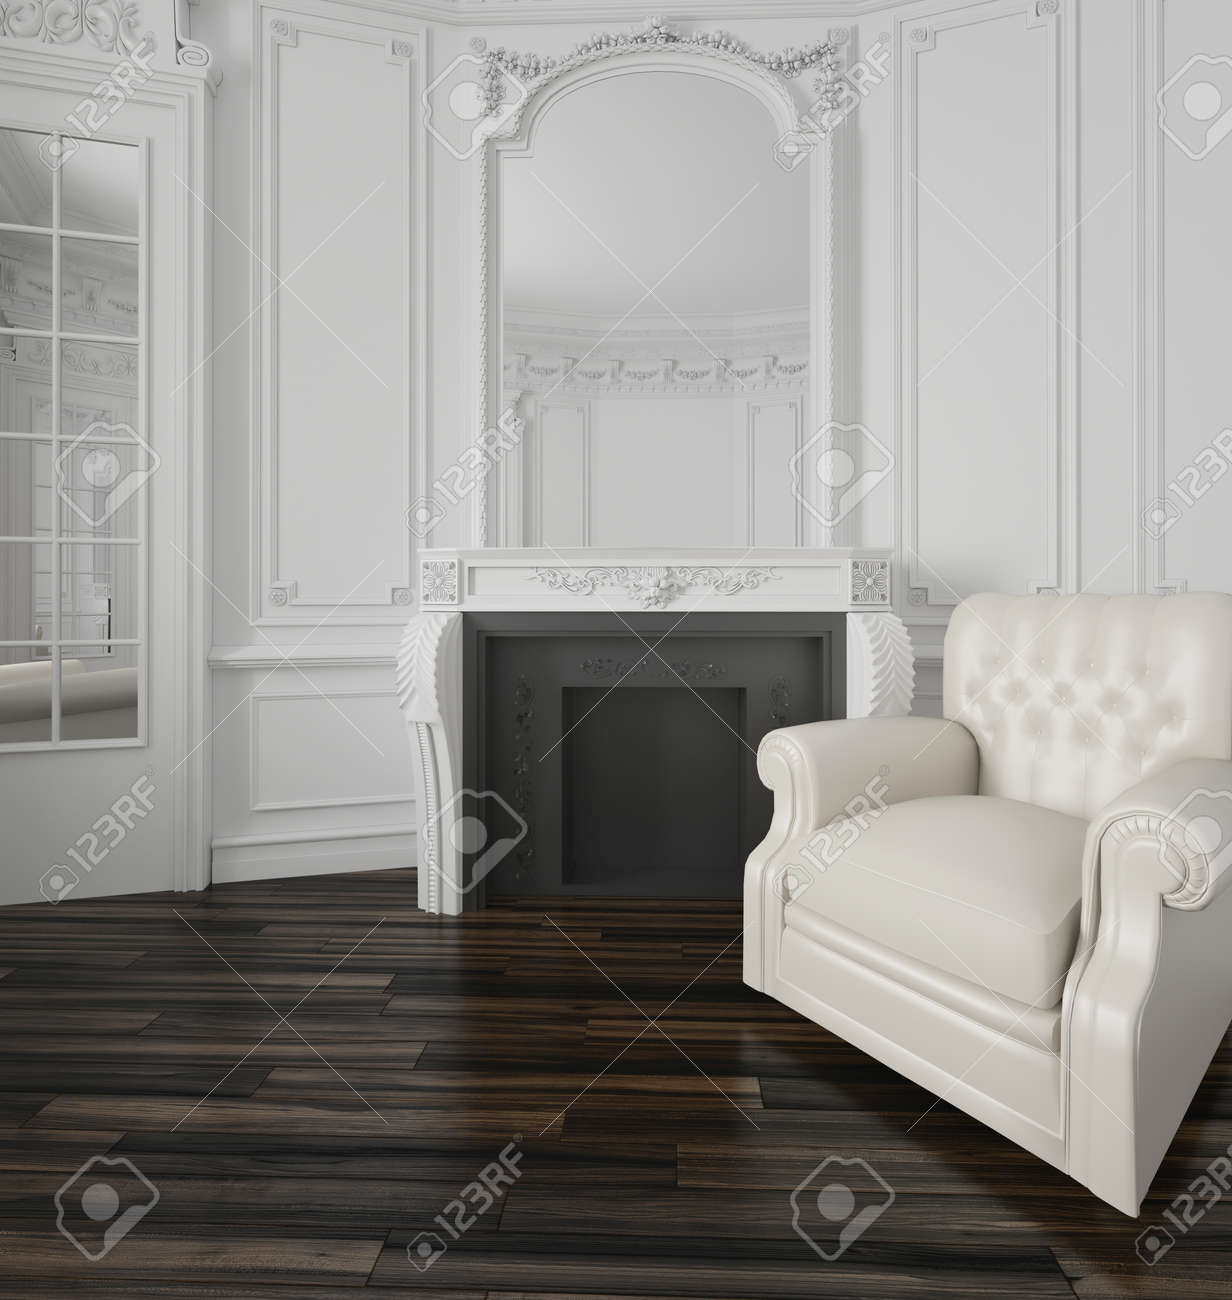 Wall Paneling Stock Photos Royalty Free Wall Paneling Images